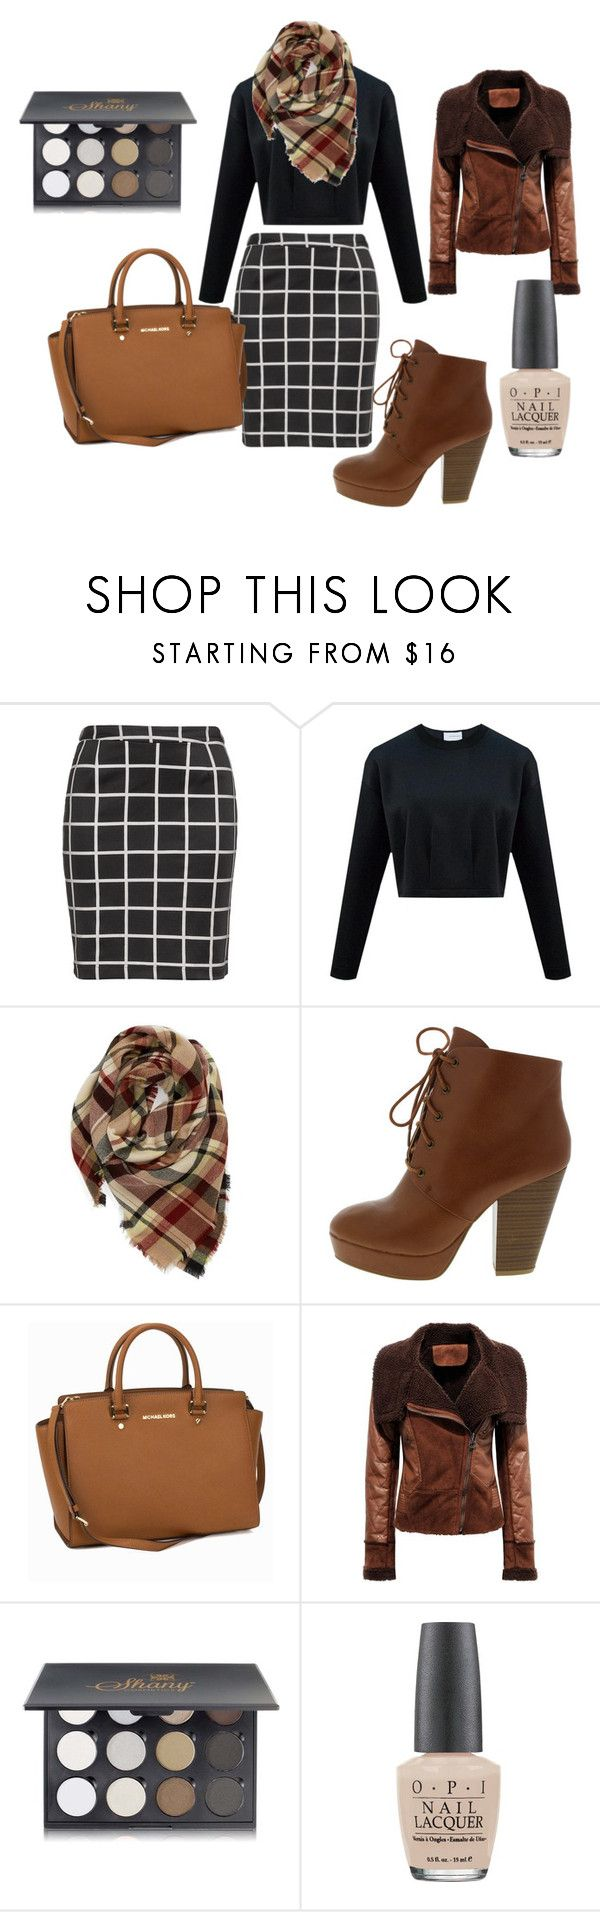 """Autumn Plussize LOOK"" by migalowa on Polyvore featuring Zizzi, Evelyn K, MICHAEL Michael Kors, Shany, OPI, women's clothing, women's fashion, women, female and woman"